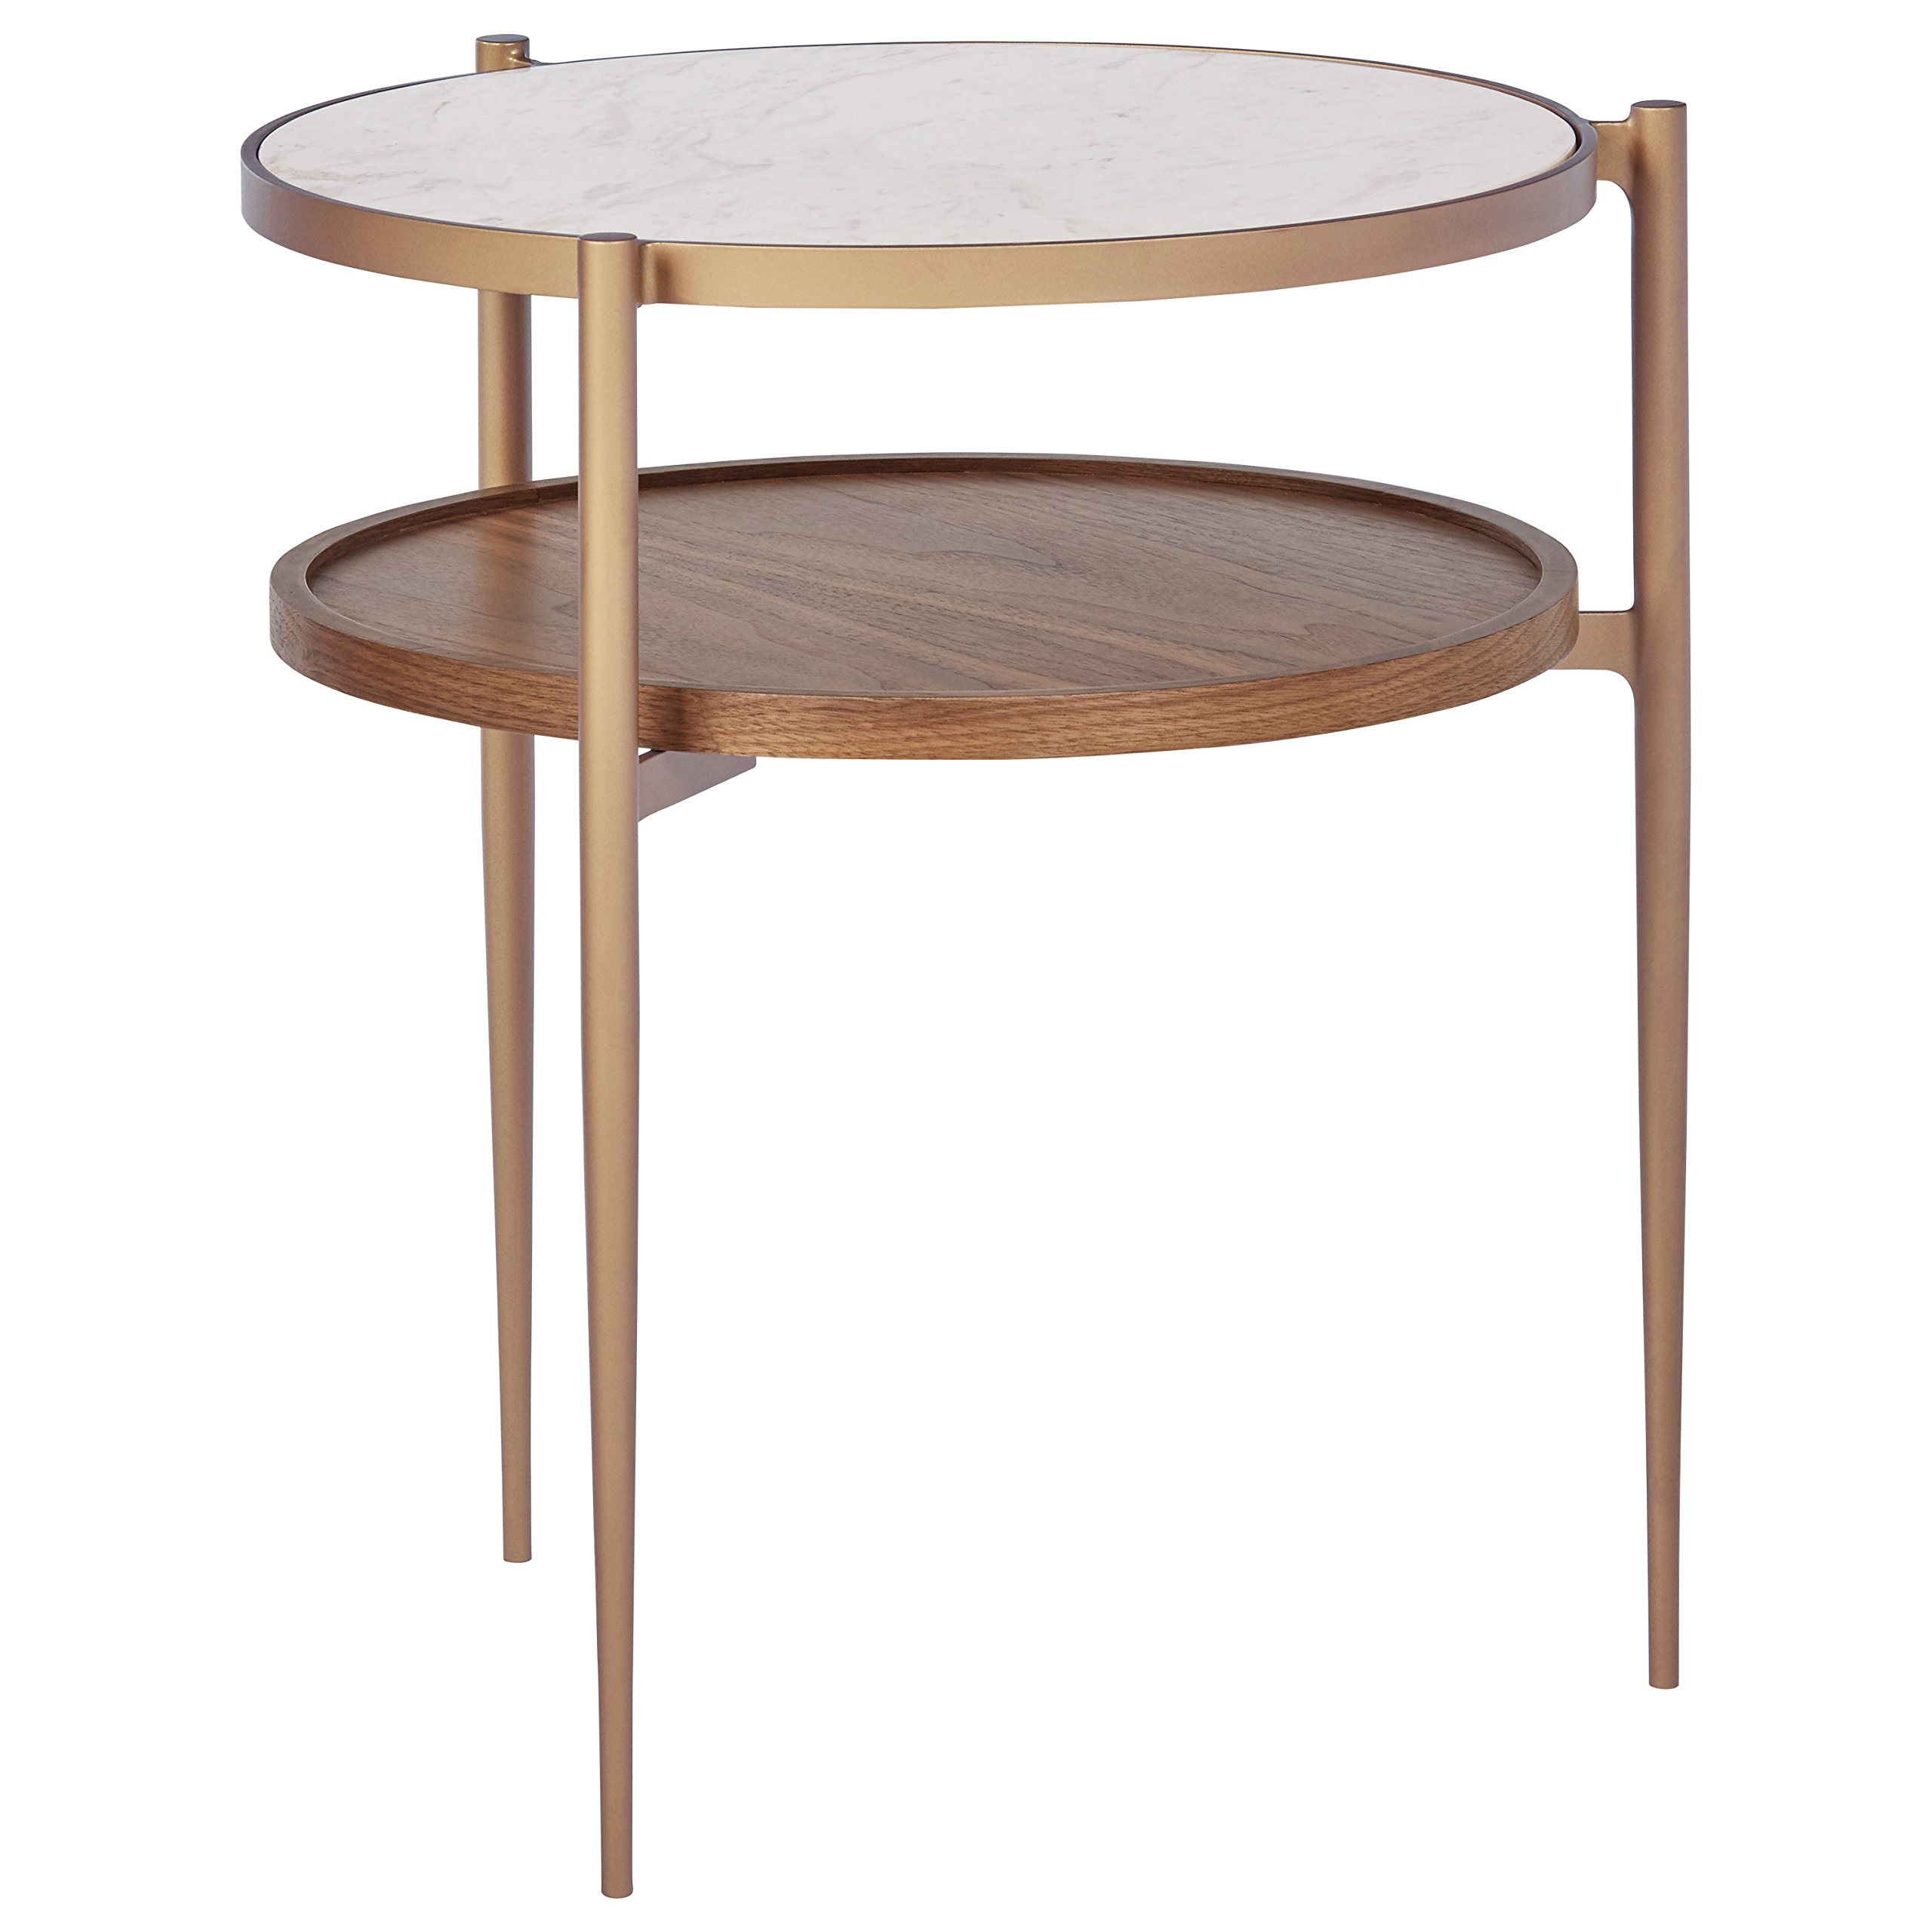 Rivet Modern White Marble and Wood Double Storage Wood Shelf Side End Table, 21.3''H, White/Brass/Walnut by Rivet